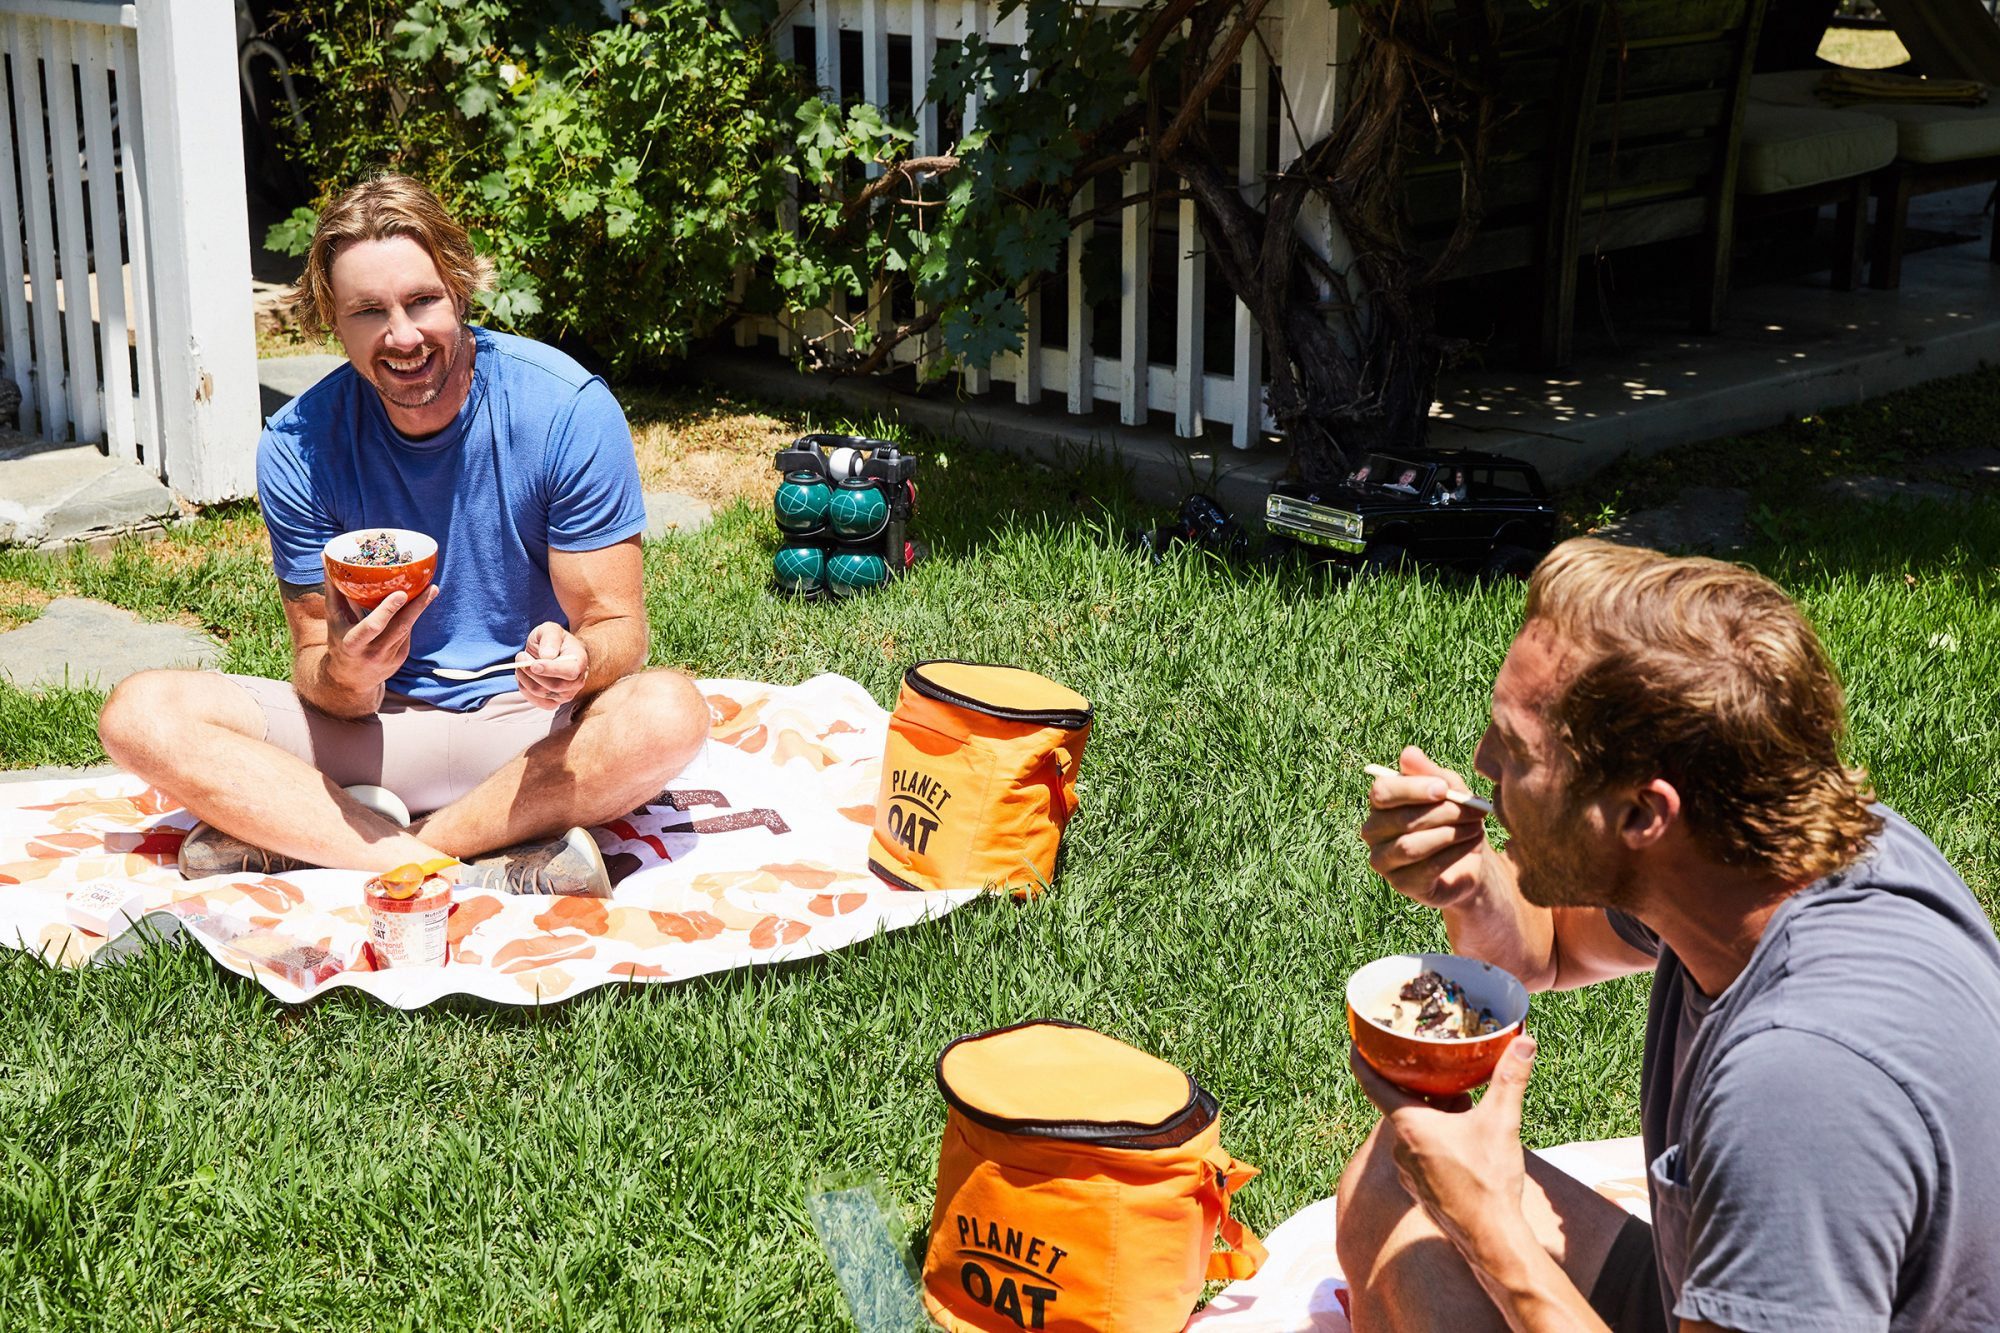 Dax Shepard and Ryan Hansen enjoy socially distanced spoonful's of Planet Oat Non-Dairy Frozen Desserts in Los Angeles, CA